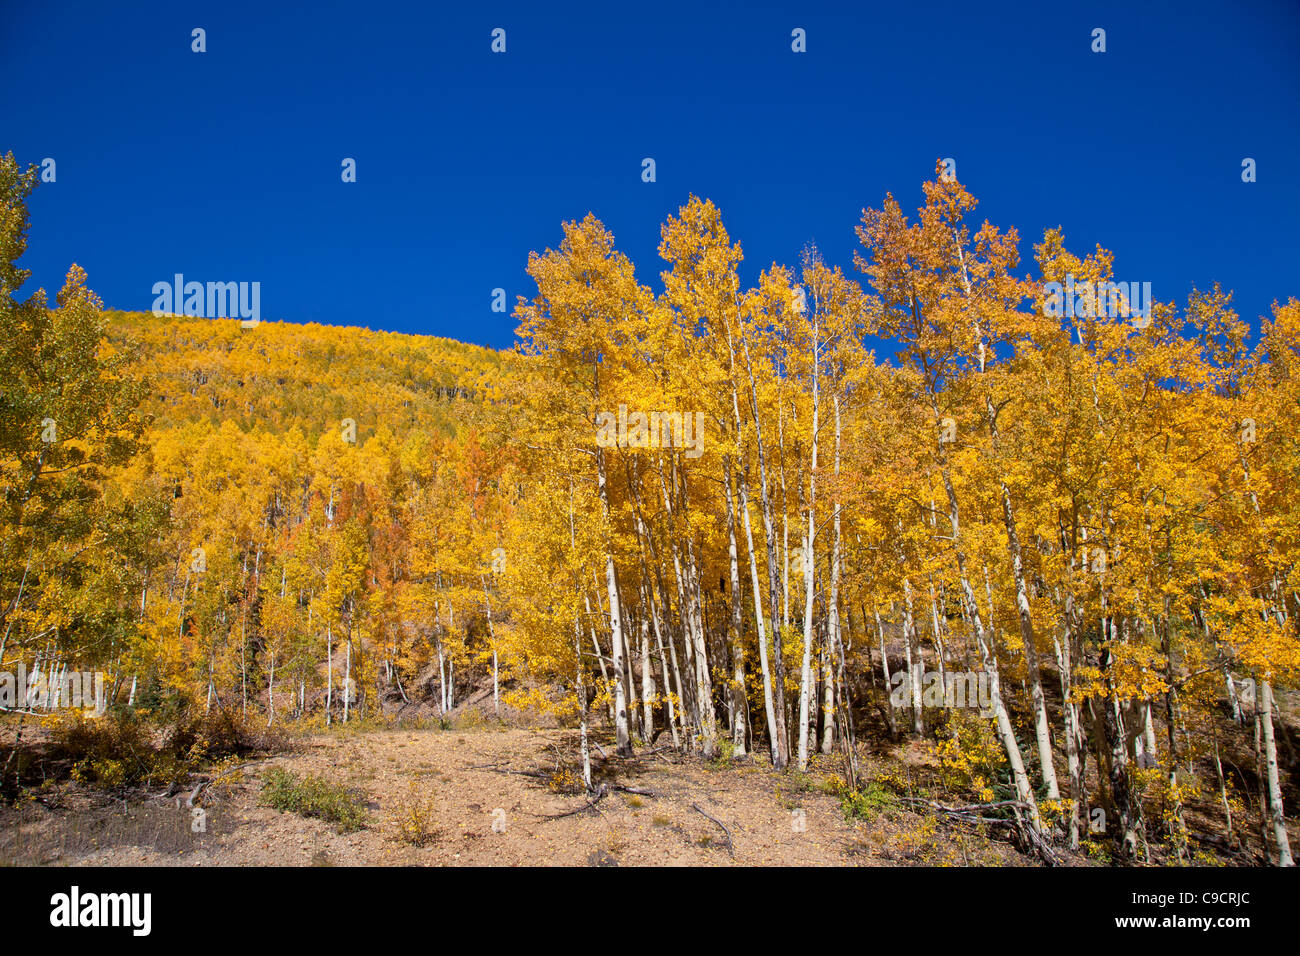 Autumn color along the Million Dollar Highway (US 550) portion of the San Juan Skyway Scenic Byway in Colorado. - Stock Image